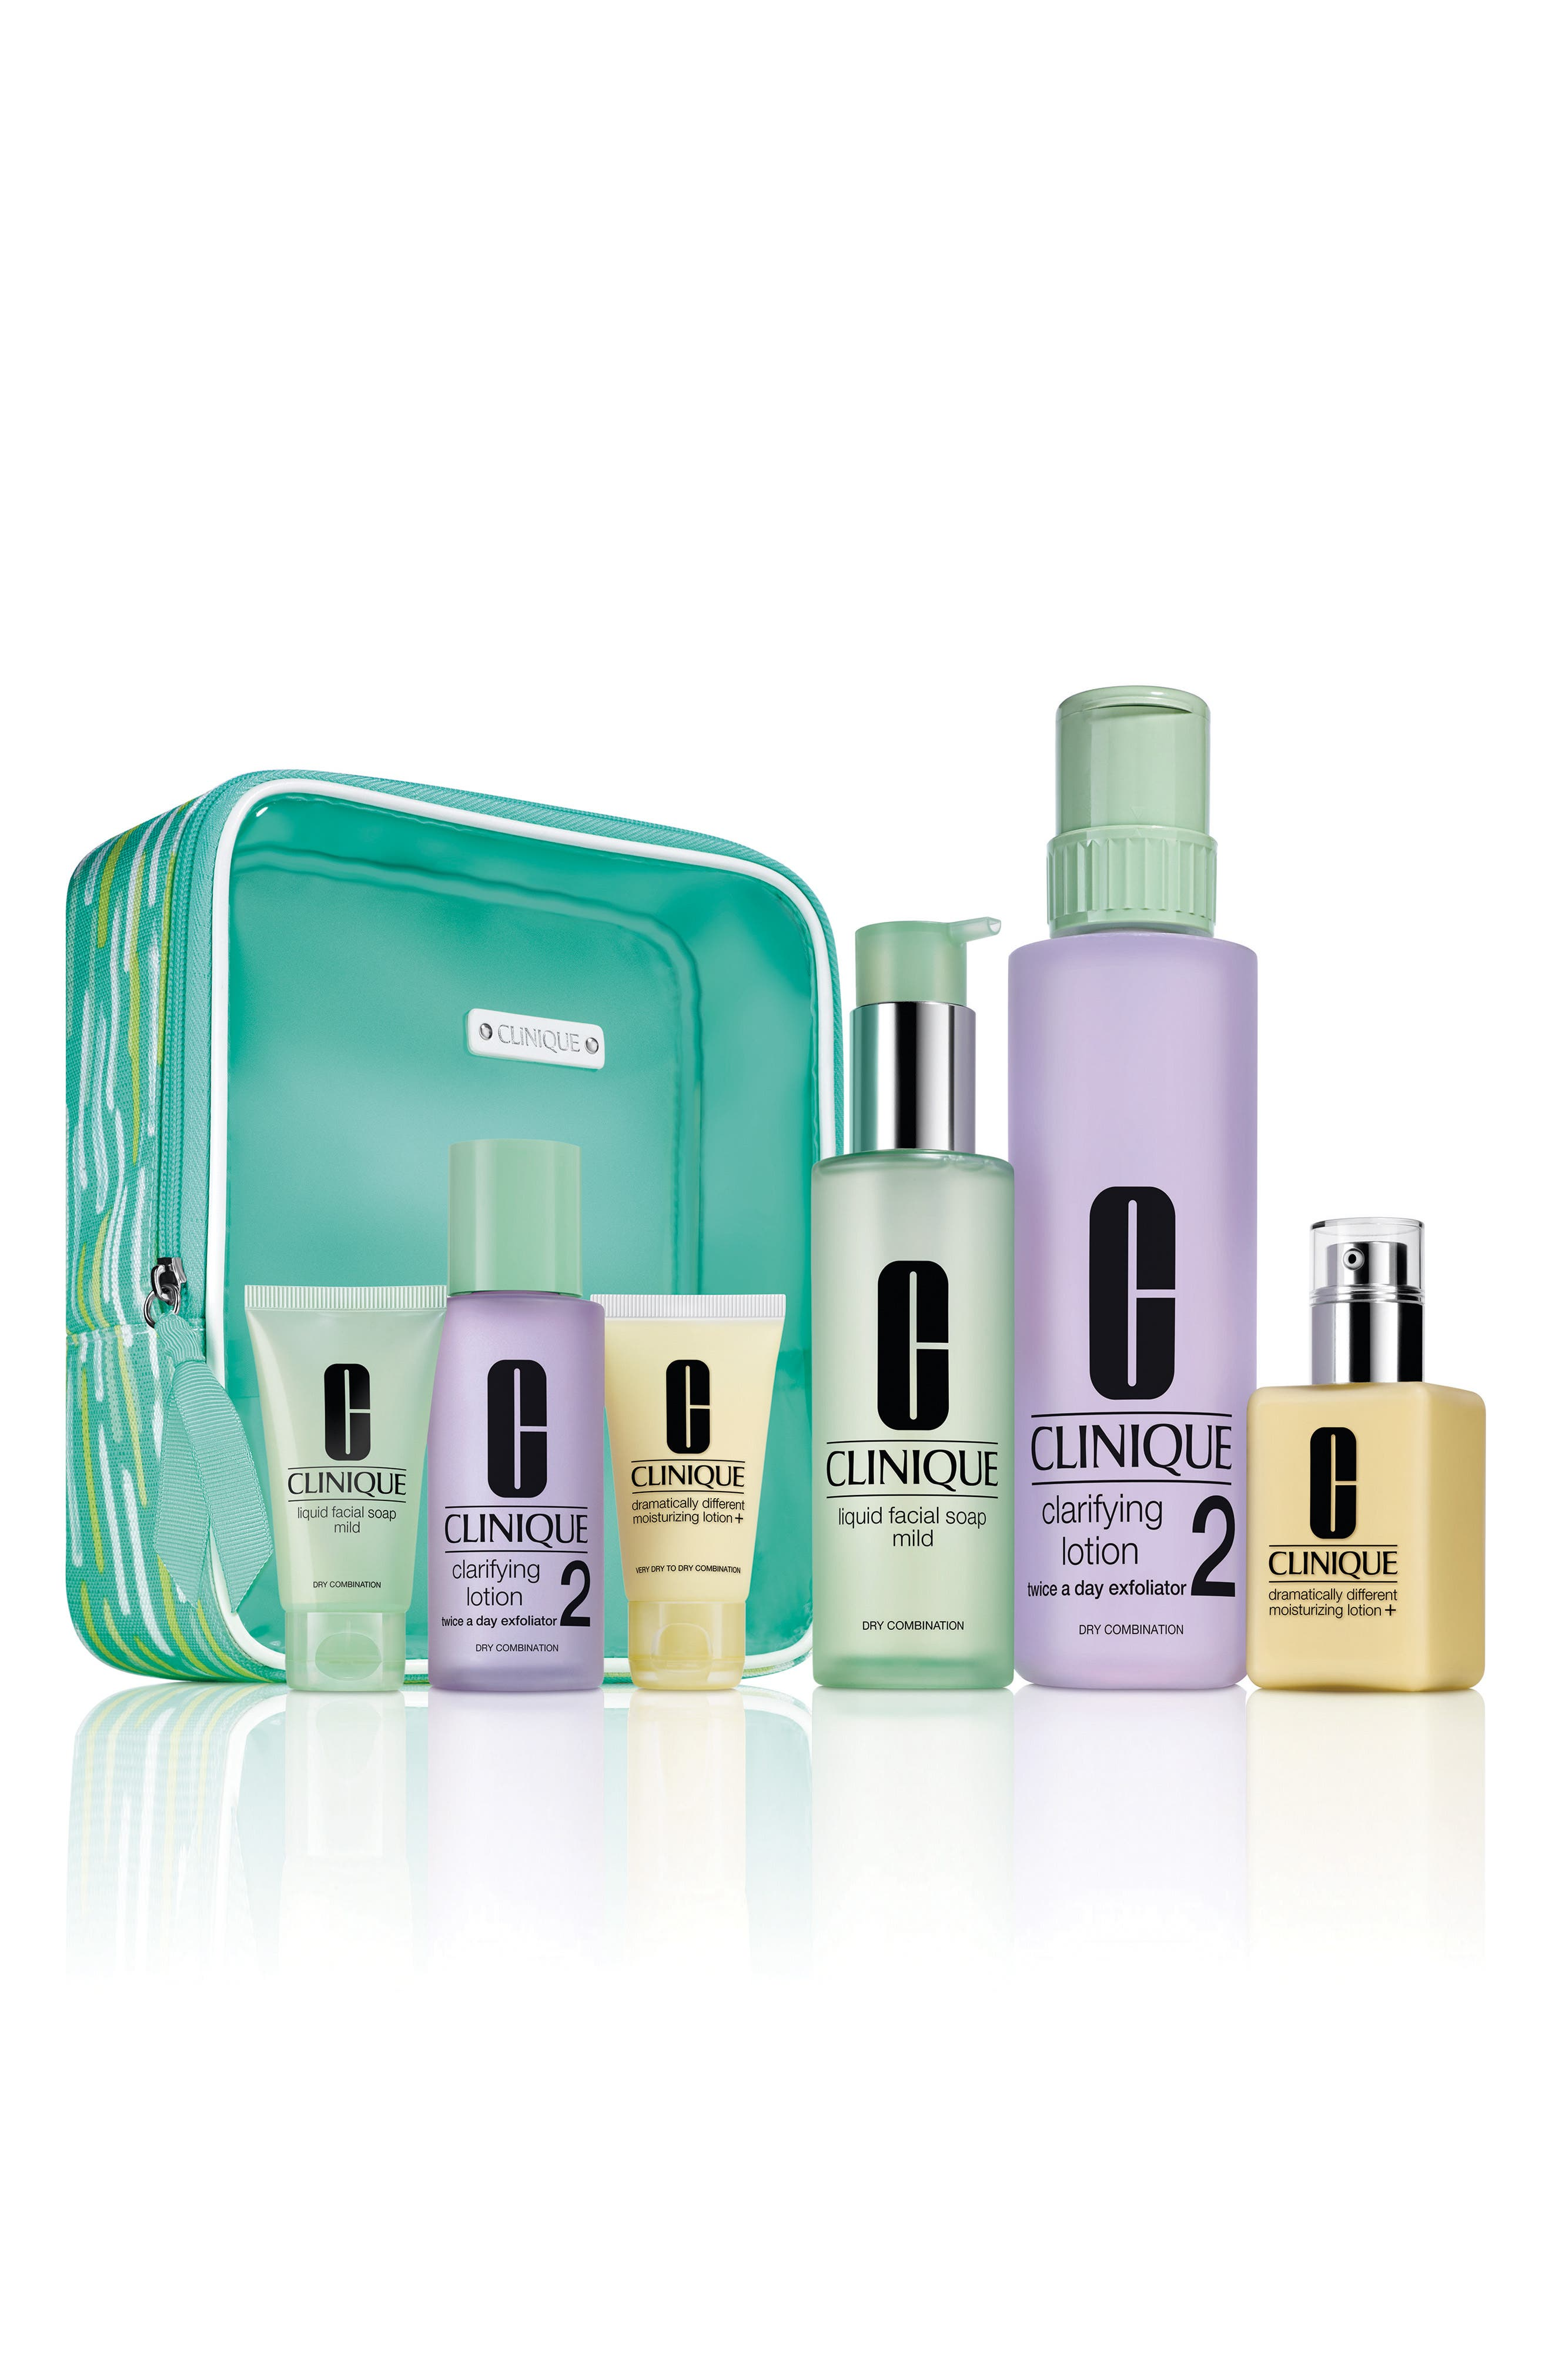 Main Image - Clinique Great Skin Everywhere Set for Skin Types I & II ($90 Value)